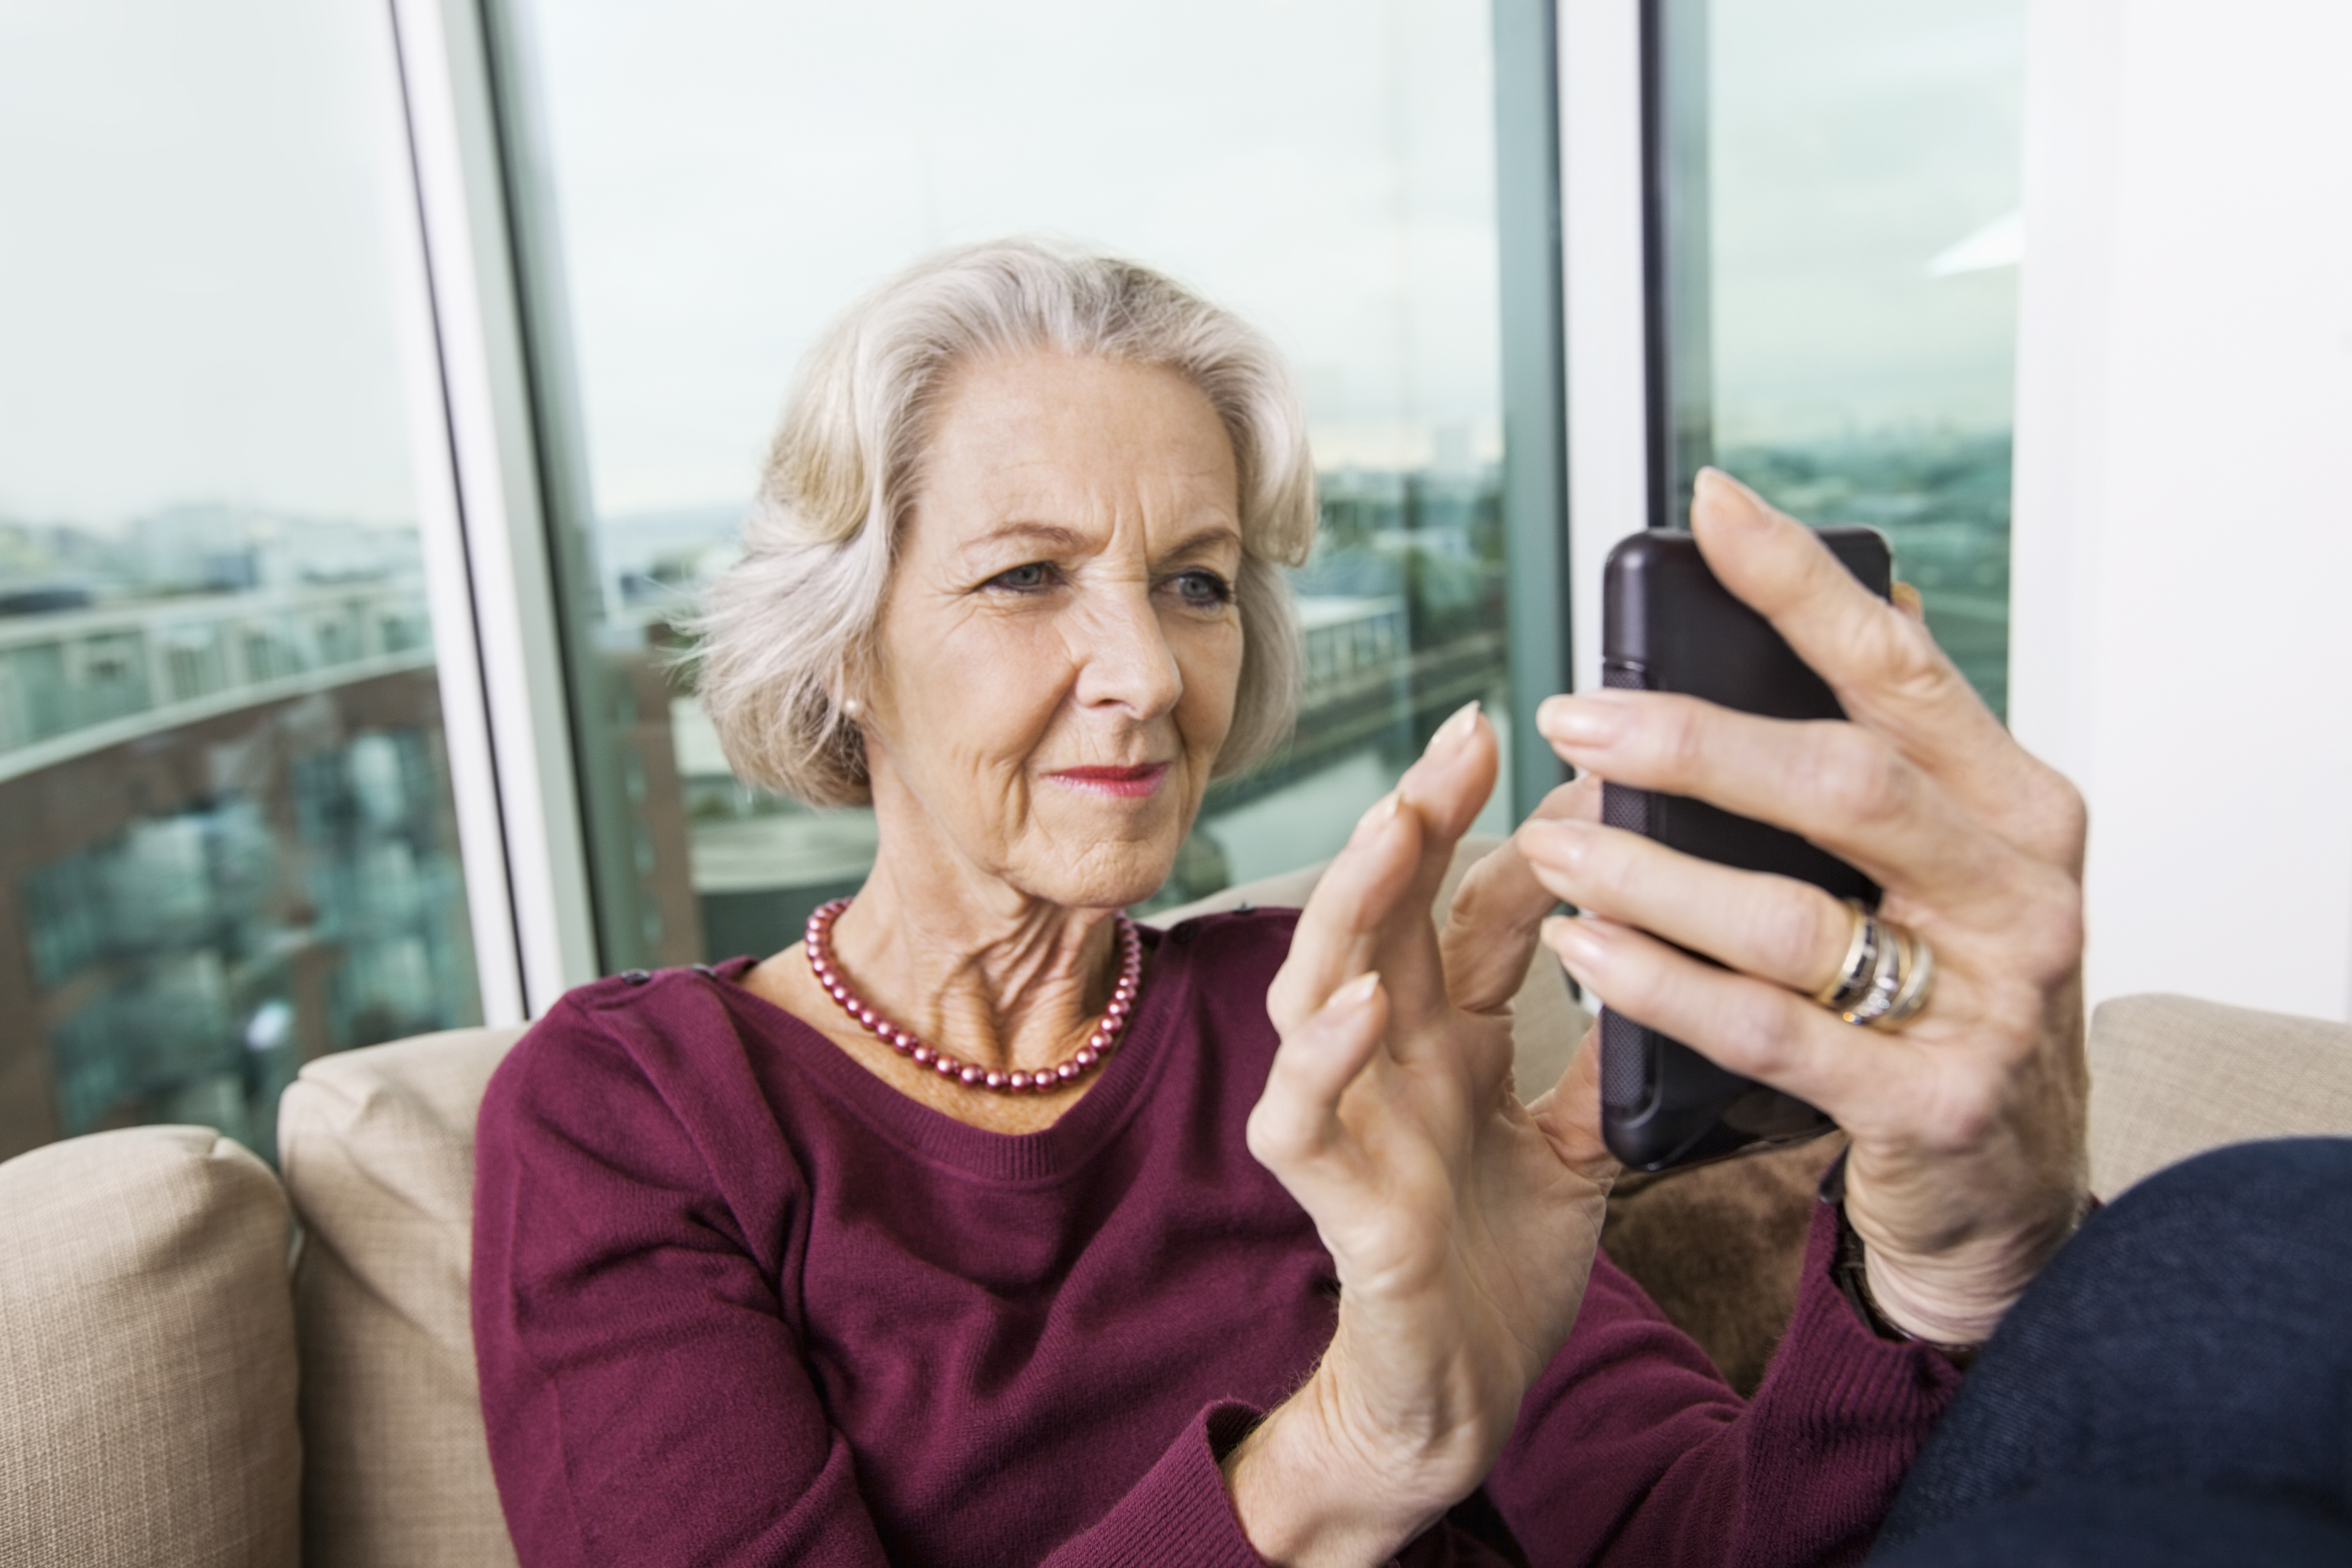 tinder for older people